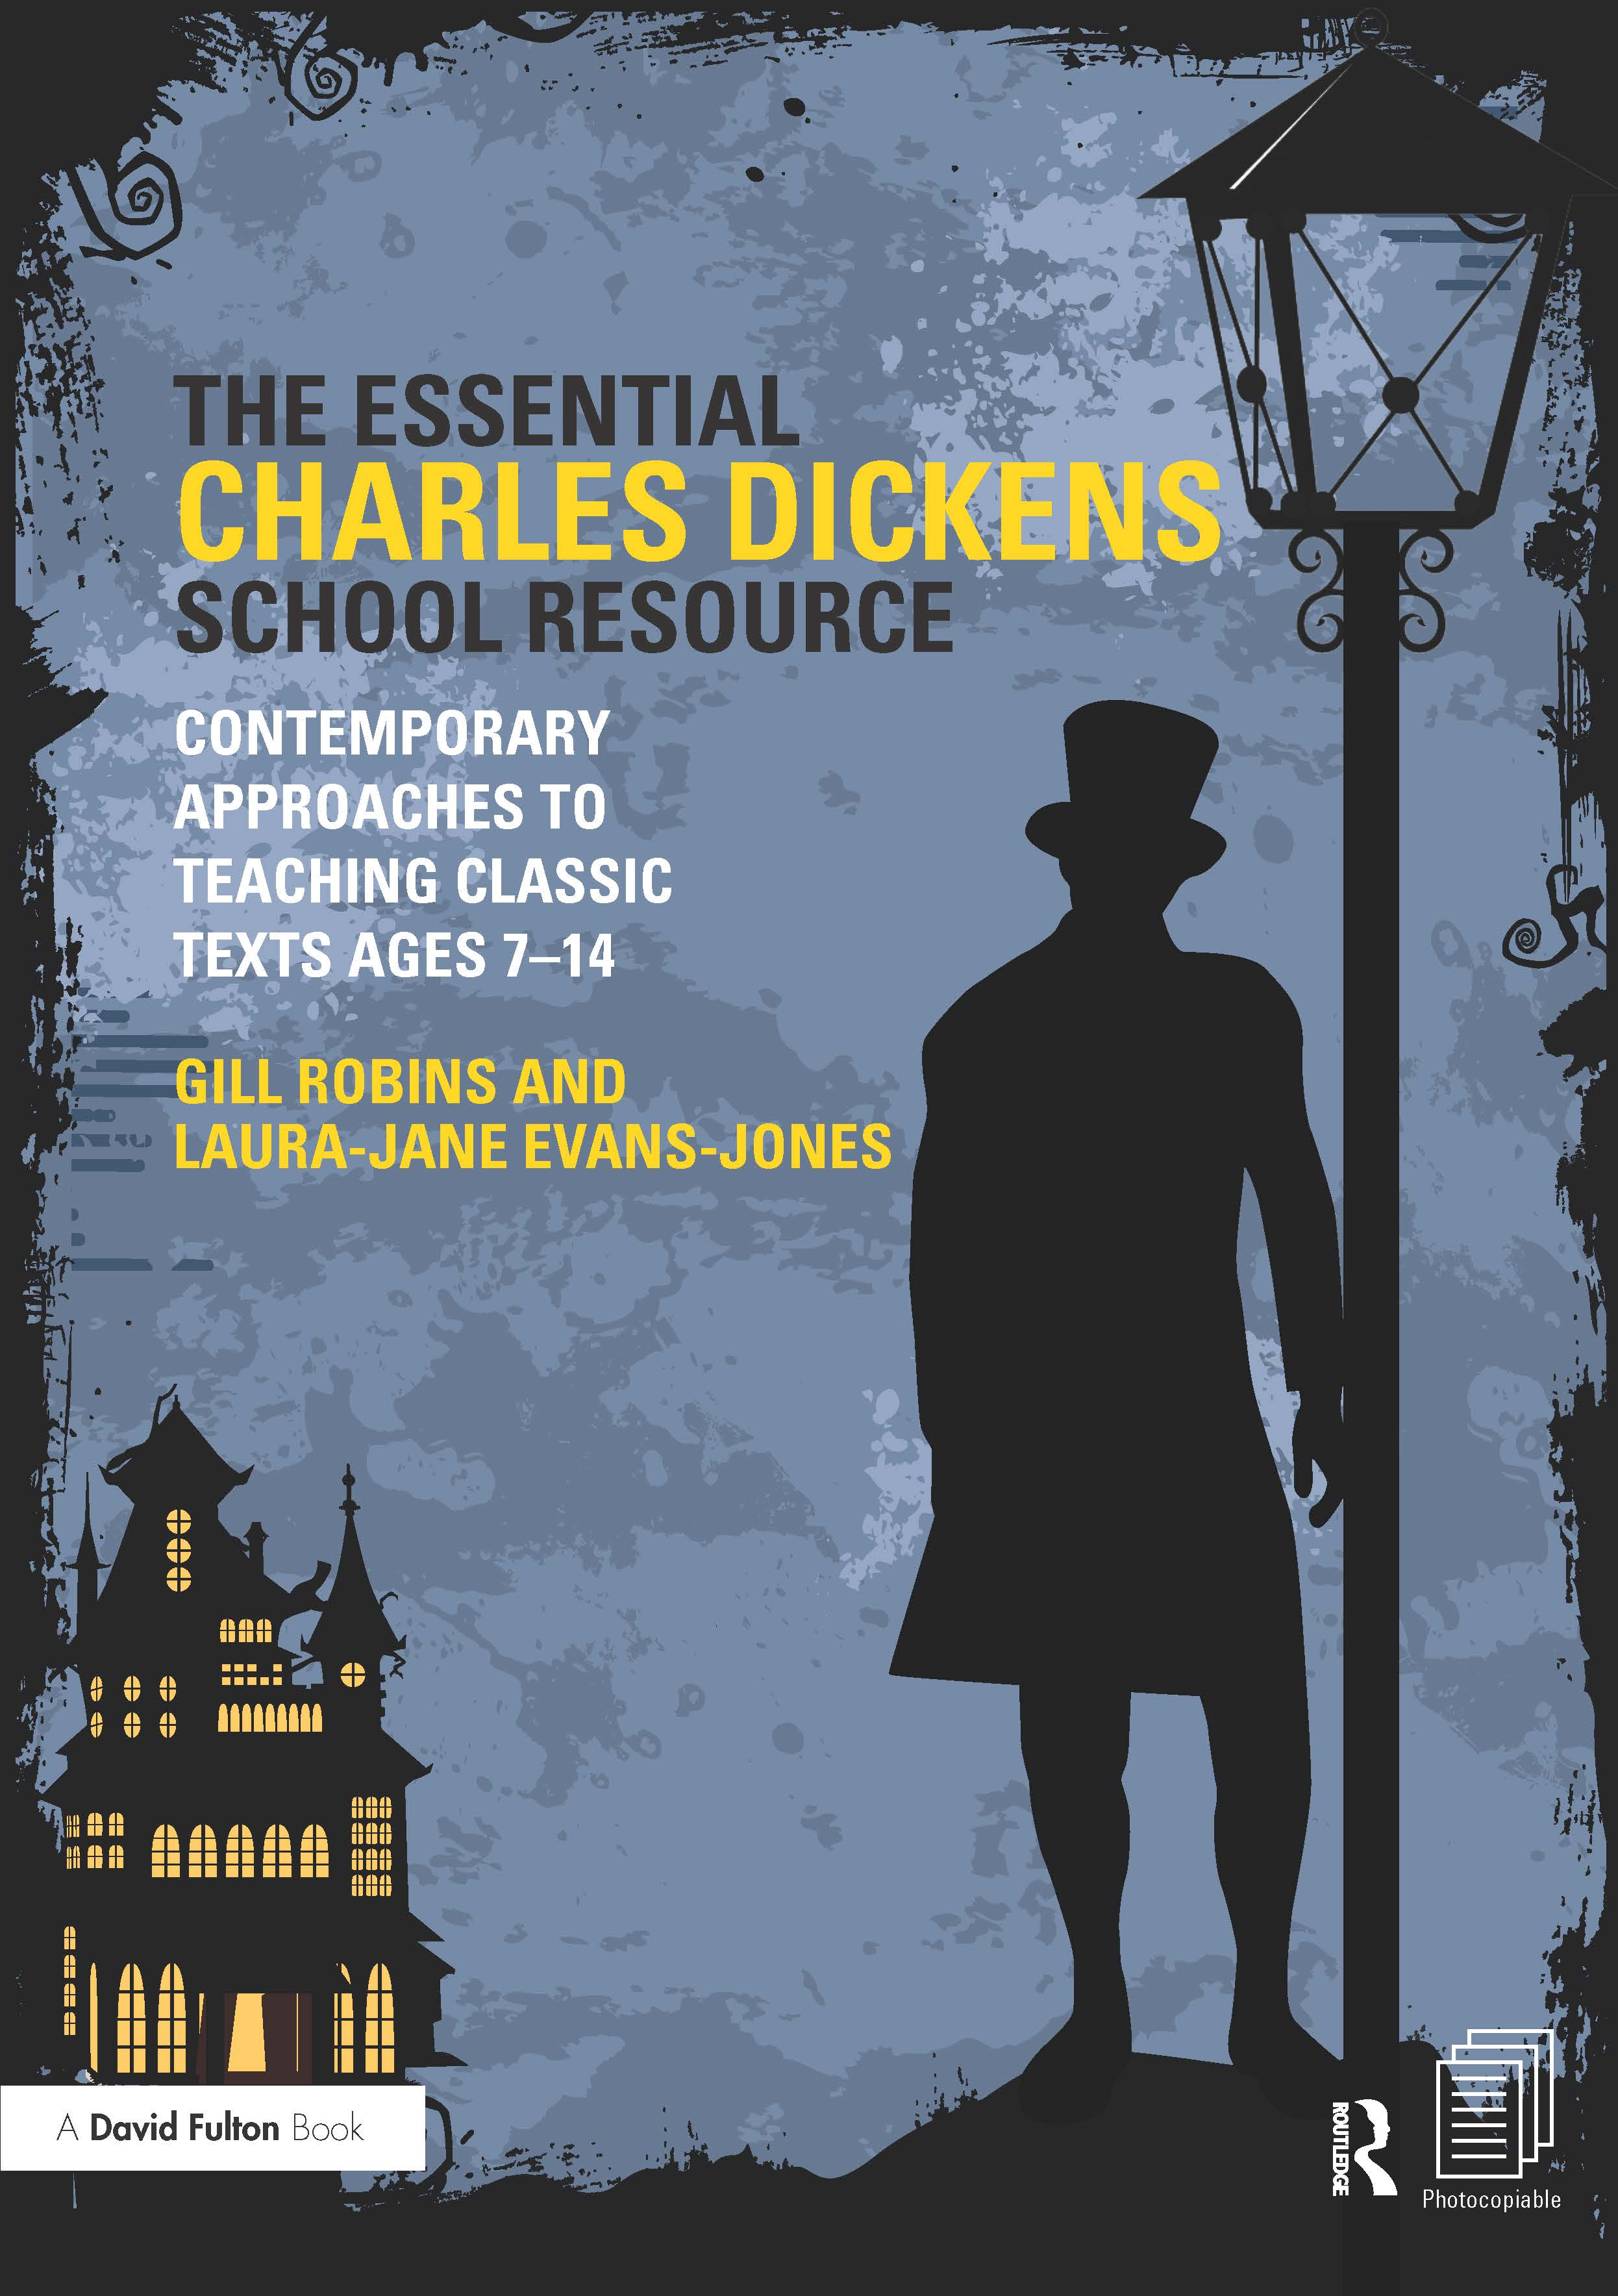 The Essential Charles Dickens School Resource: Contemporary Approaches to Teaching Classic Texts Ages 7-14 (Paperback) book cover